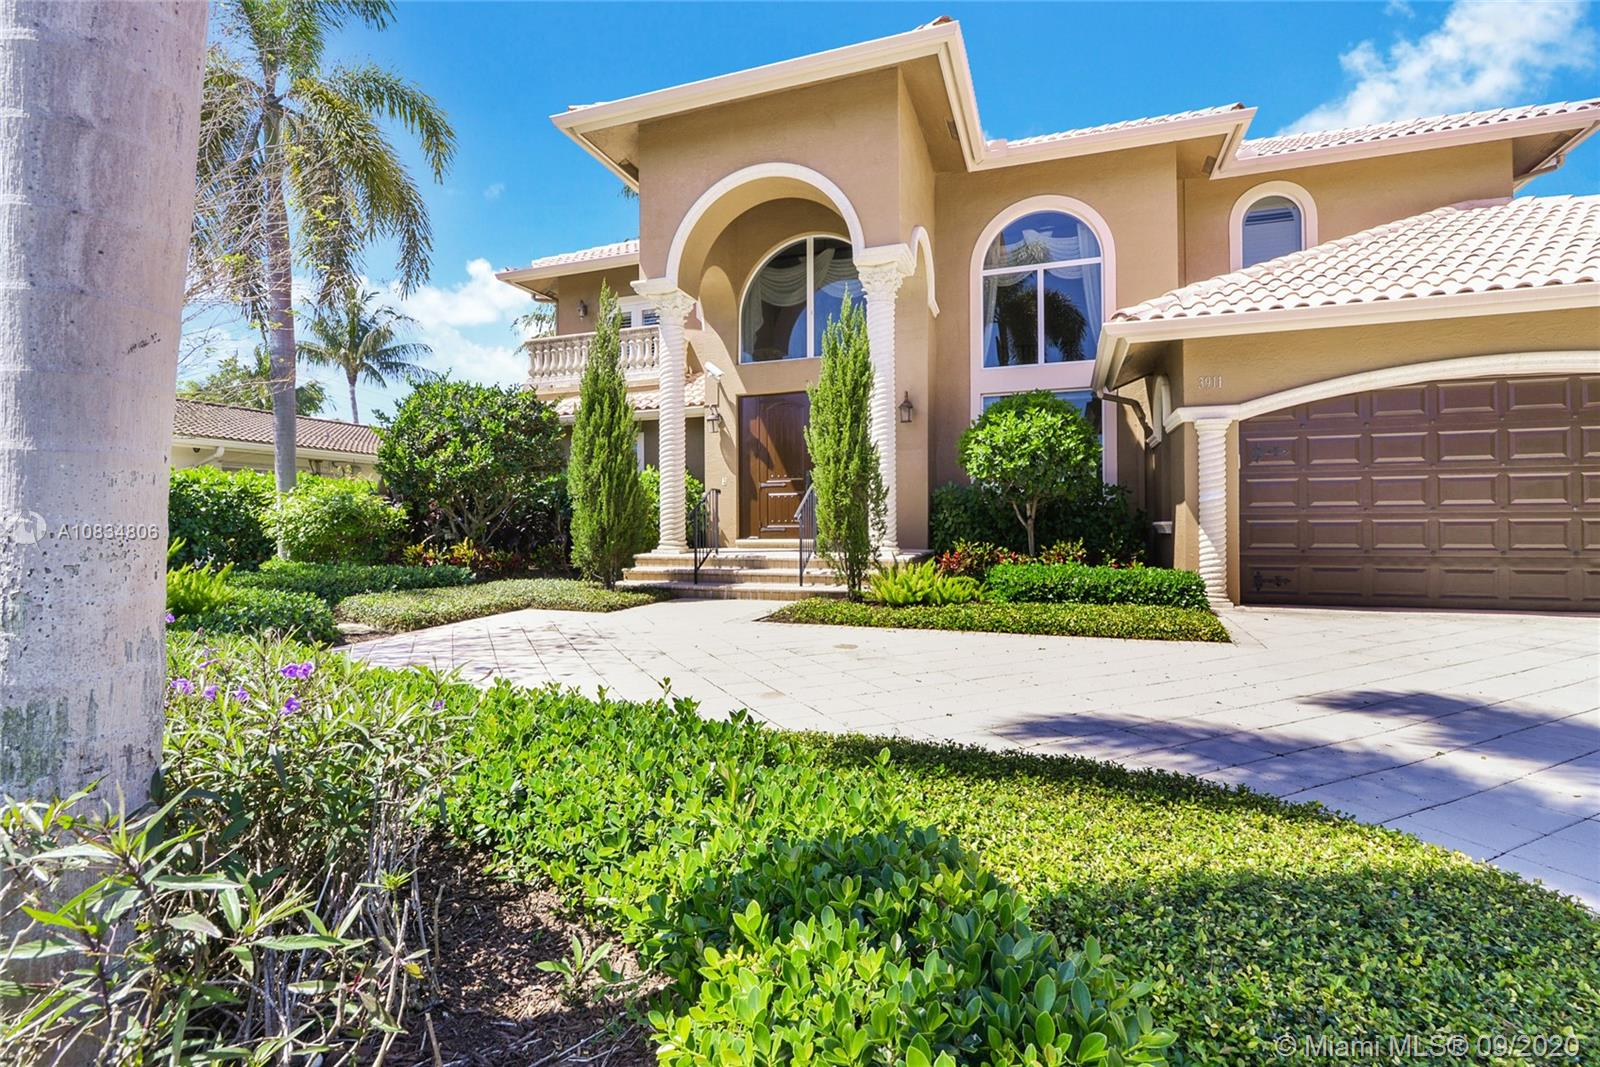 Beautiful home in the highly desirable Venetian Isles section of Lighthouse Point with East exposure. A boater's paradise with protected dock, and no bridges to intracoastal Waterway. Wonderful pool, spa and backyard. Custom built in 2000, this five-bedroom, four & one half bath home is filled with light and open spaces for family living. Marble floors downstairs & handsome hardwood floors upstairs. Impact windows and doors throughout. Eat-in gourmet kitchen with top-of-the-line Thermador appliances and custom cabinetry opens to large family room. There is a large en-suite main bedroom downstairs and a second en-suite bedroom upstairs with 3 additional bedrooms. All have lovely water views! Completing the home is a large laundry room and a full 3-car garage. 24-hour to show please.